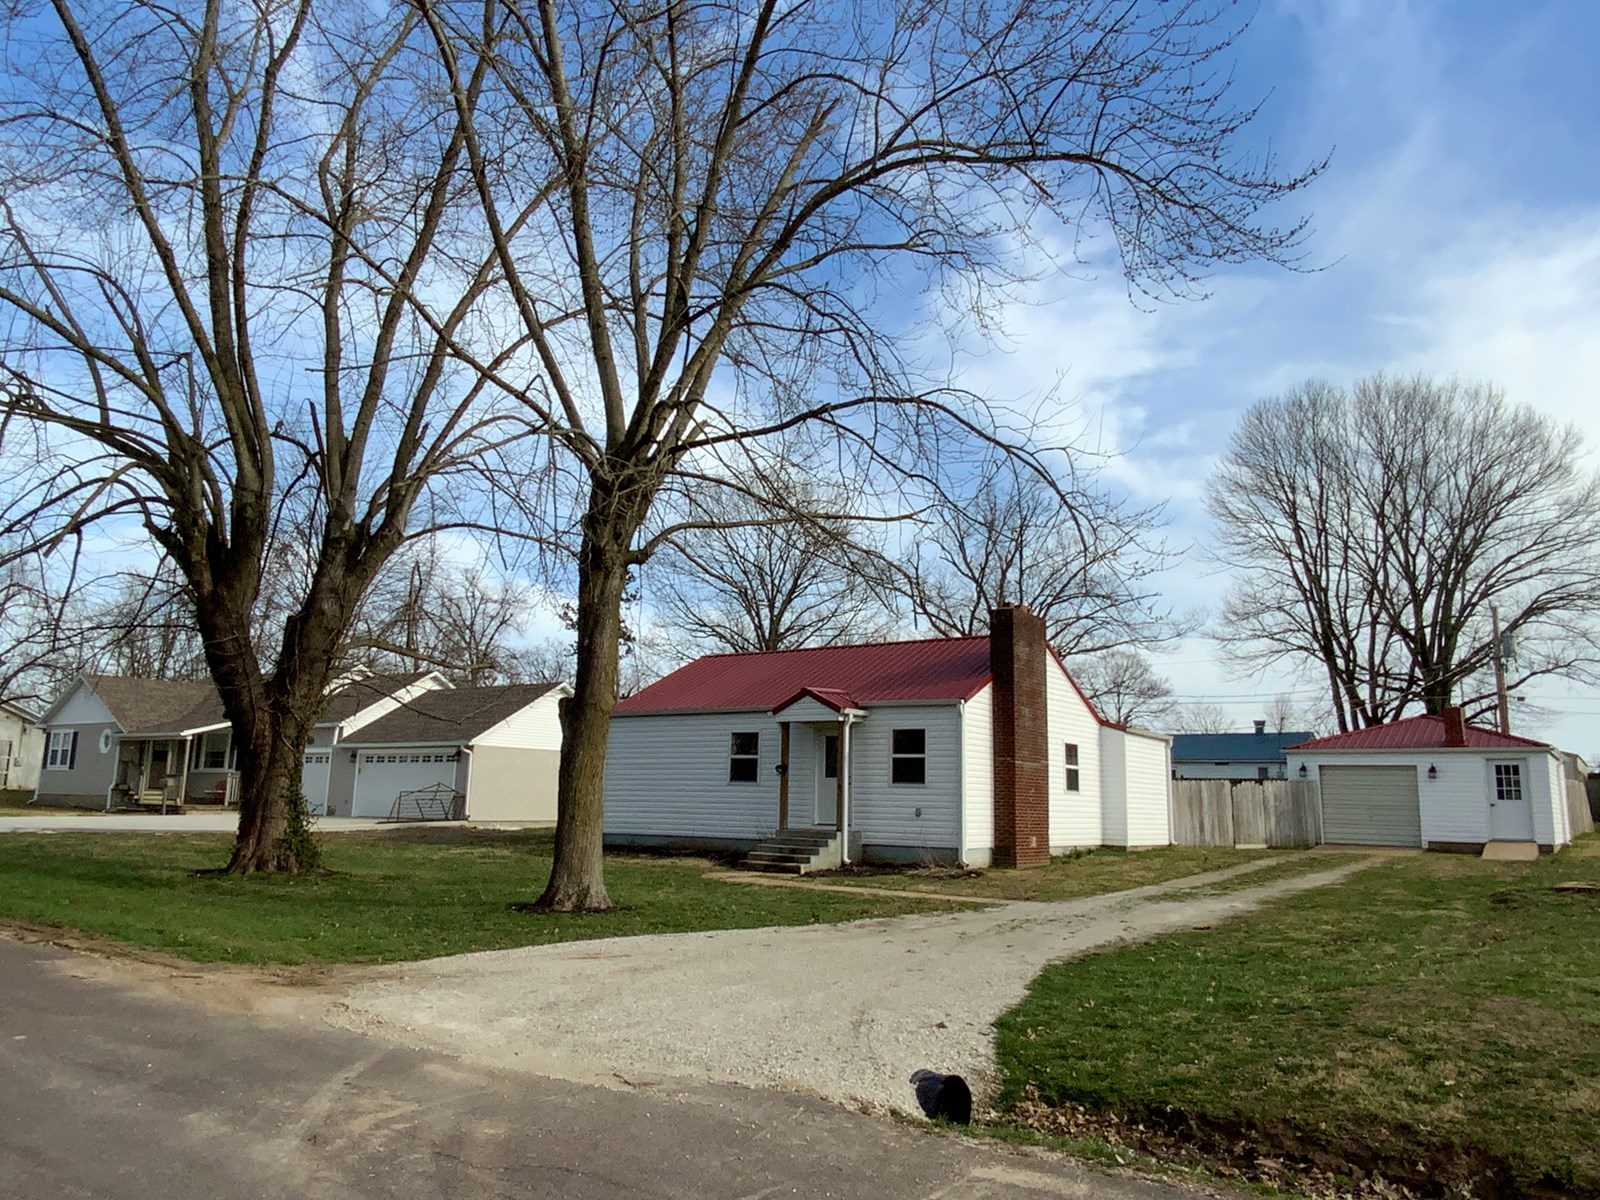 Home for Sale in Southern Missouri Small Town